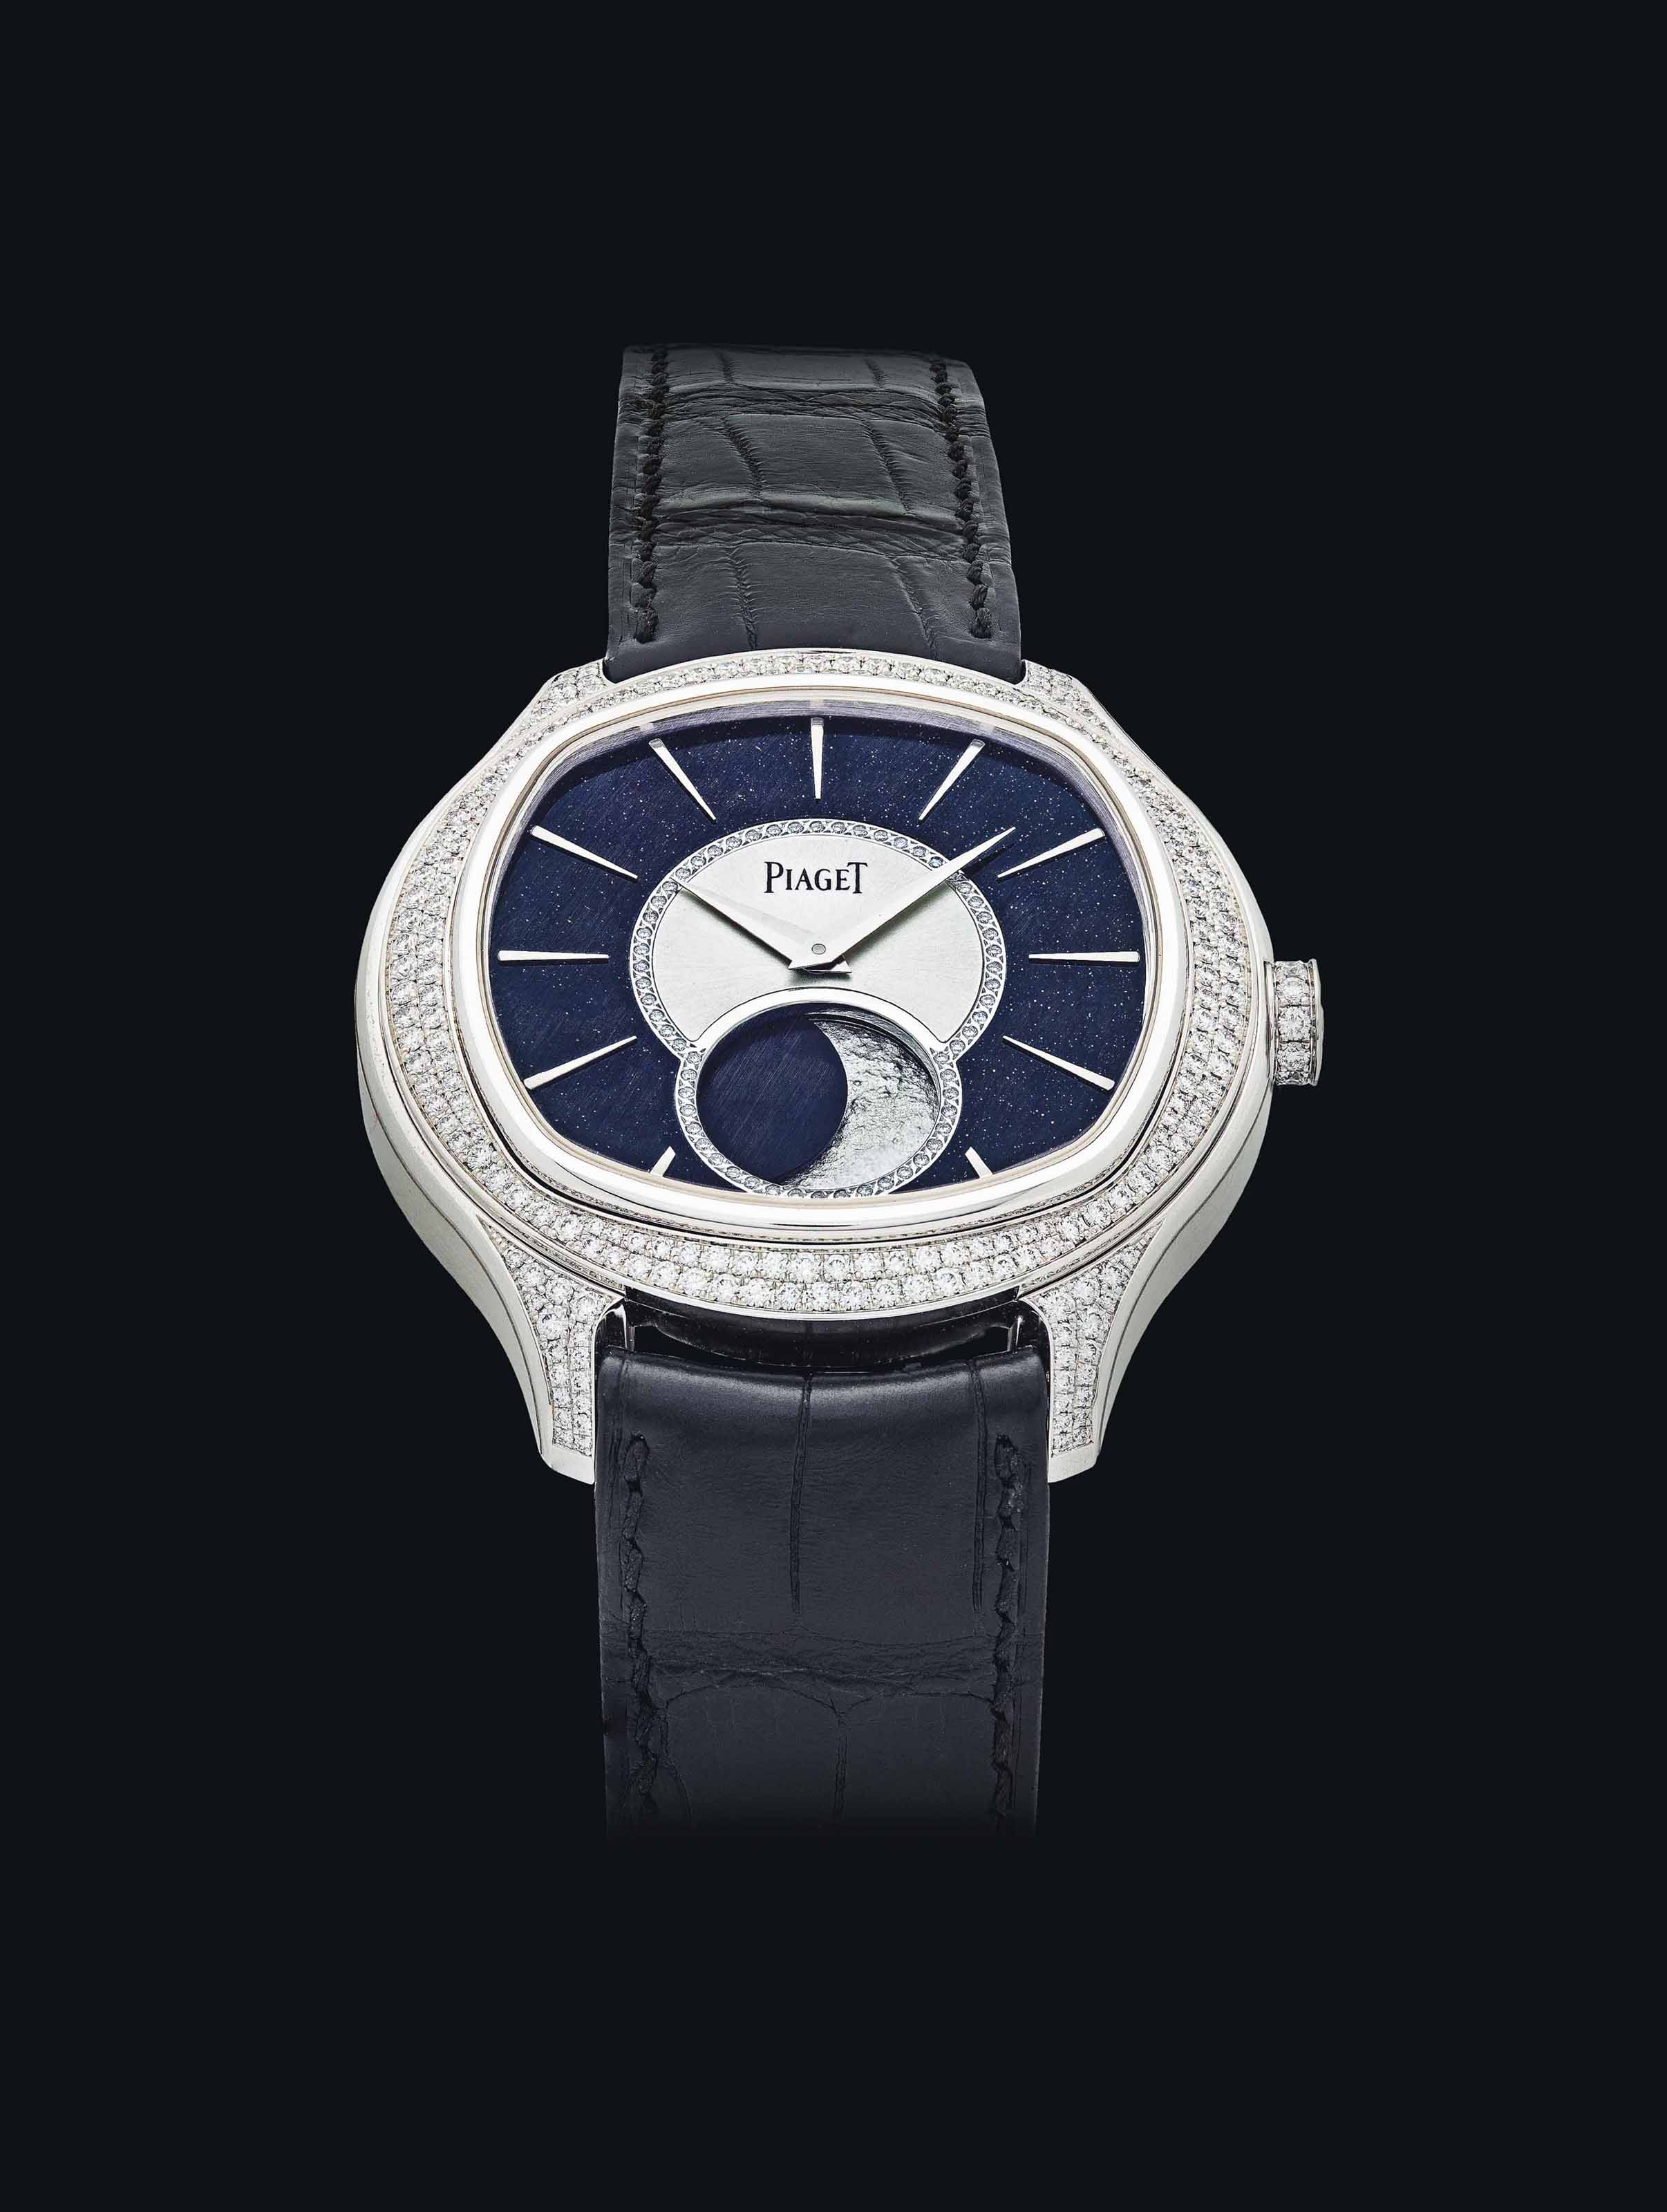 PIAGET. AN IMPRESSIVE AND VERY